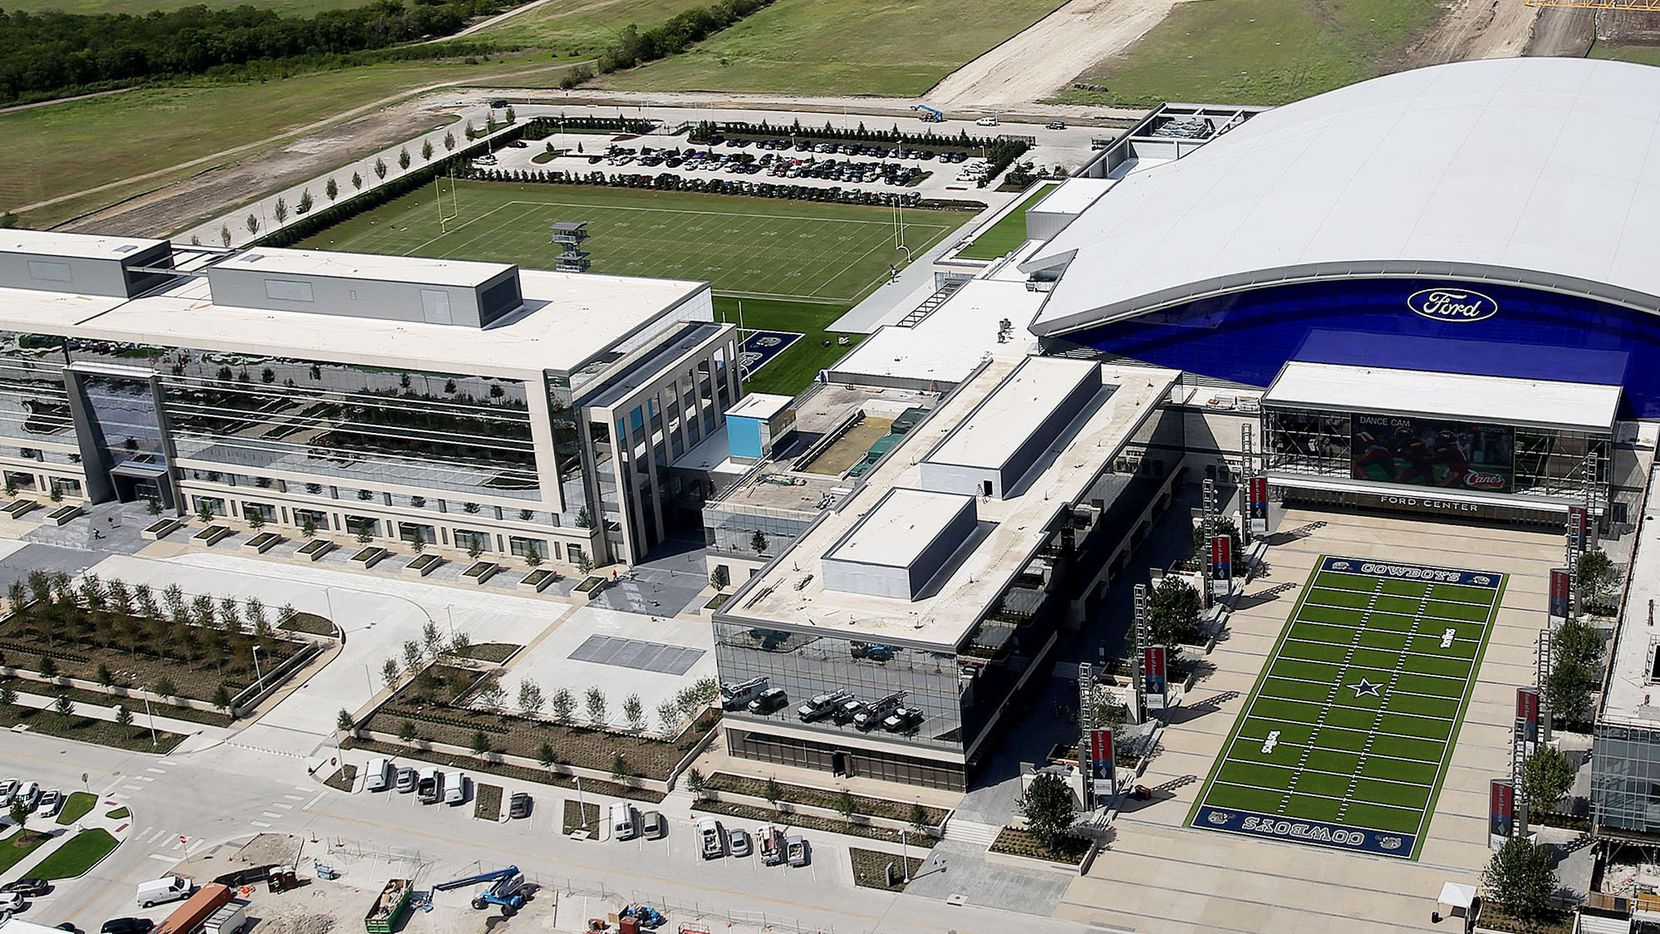 As expected, Dr Pepper is moving its Texas headquarters to the Dallas Cowboys Star development in Frisco.